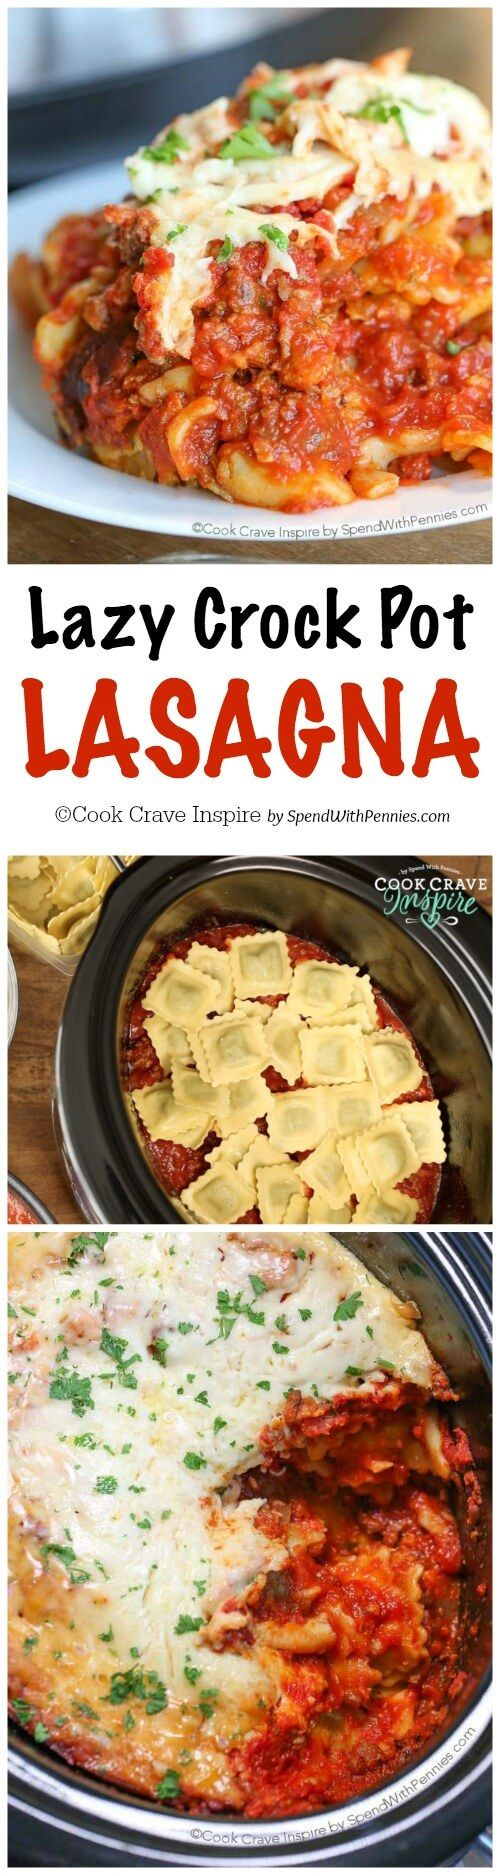 Lazy Crock Pot Lasagna ~ A family favorite and so quick and easy to make...  A delicious meat sauce is layered with cheese and spinach filled ravioli and loads of gooey cheese and cooks up perfectly in the slow cooker.